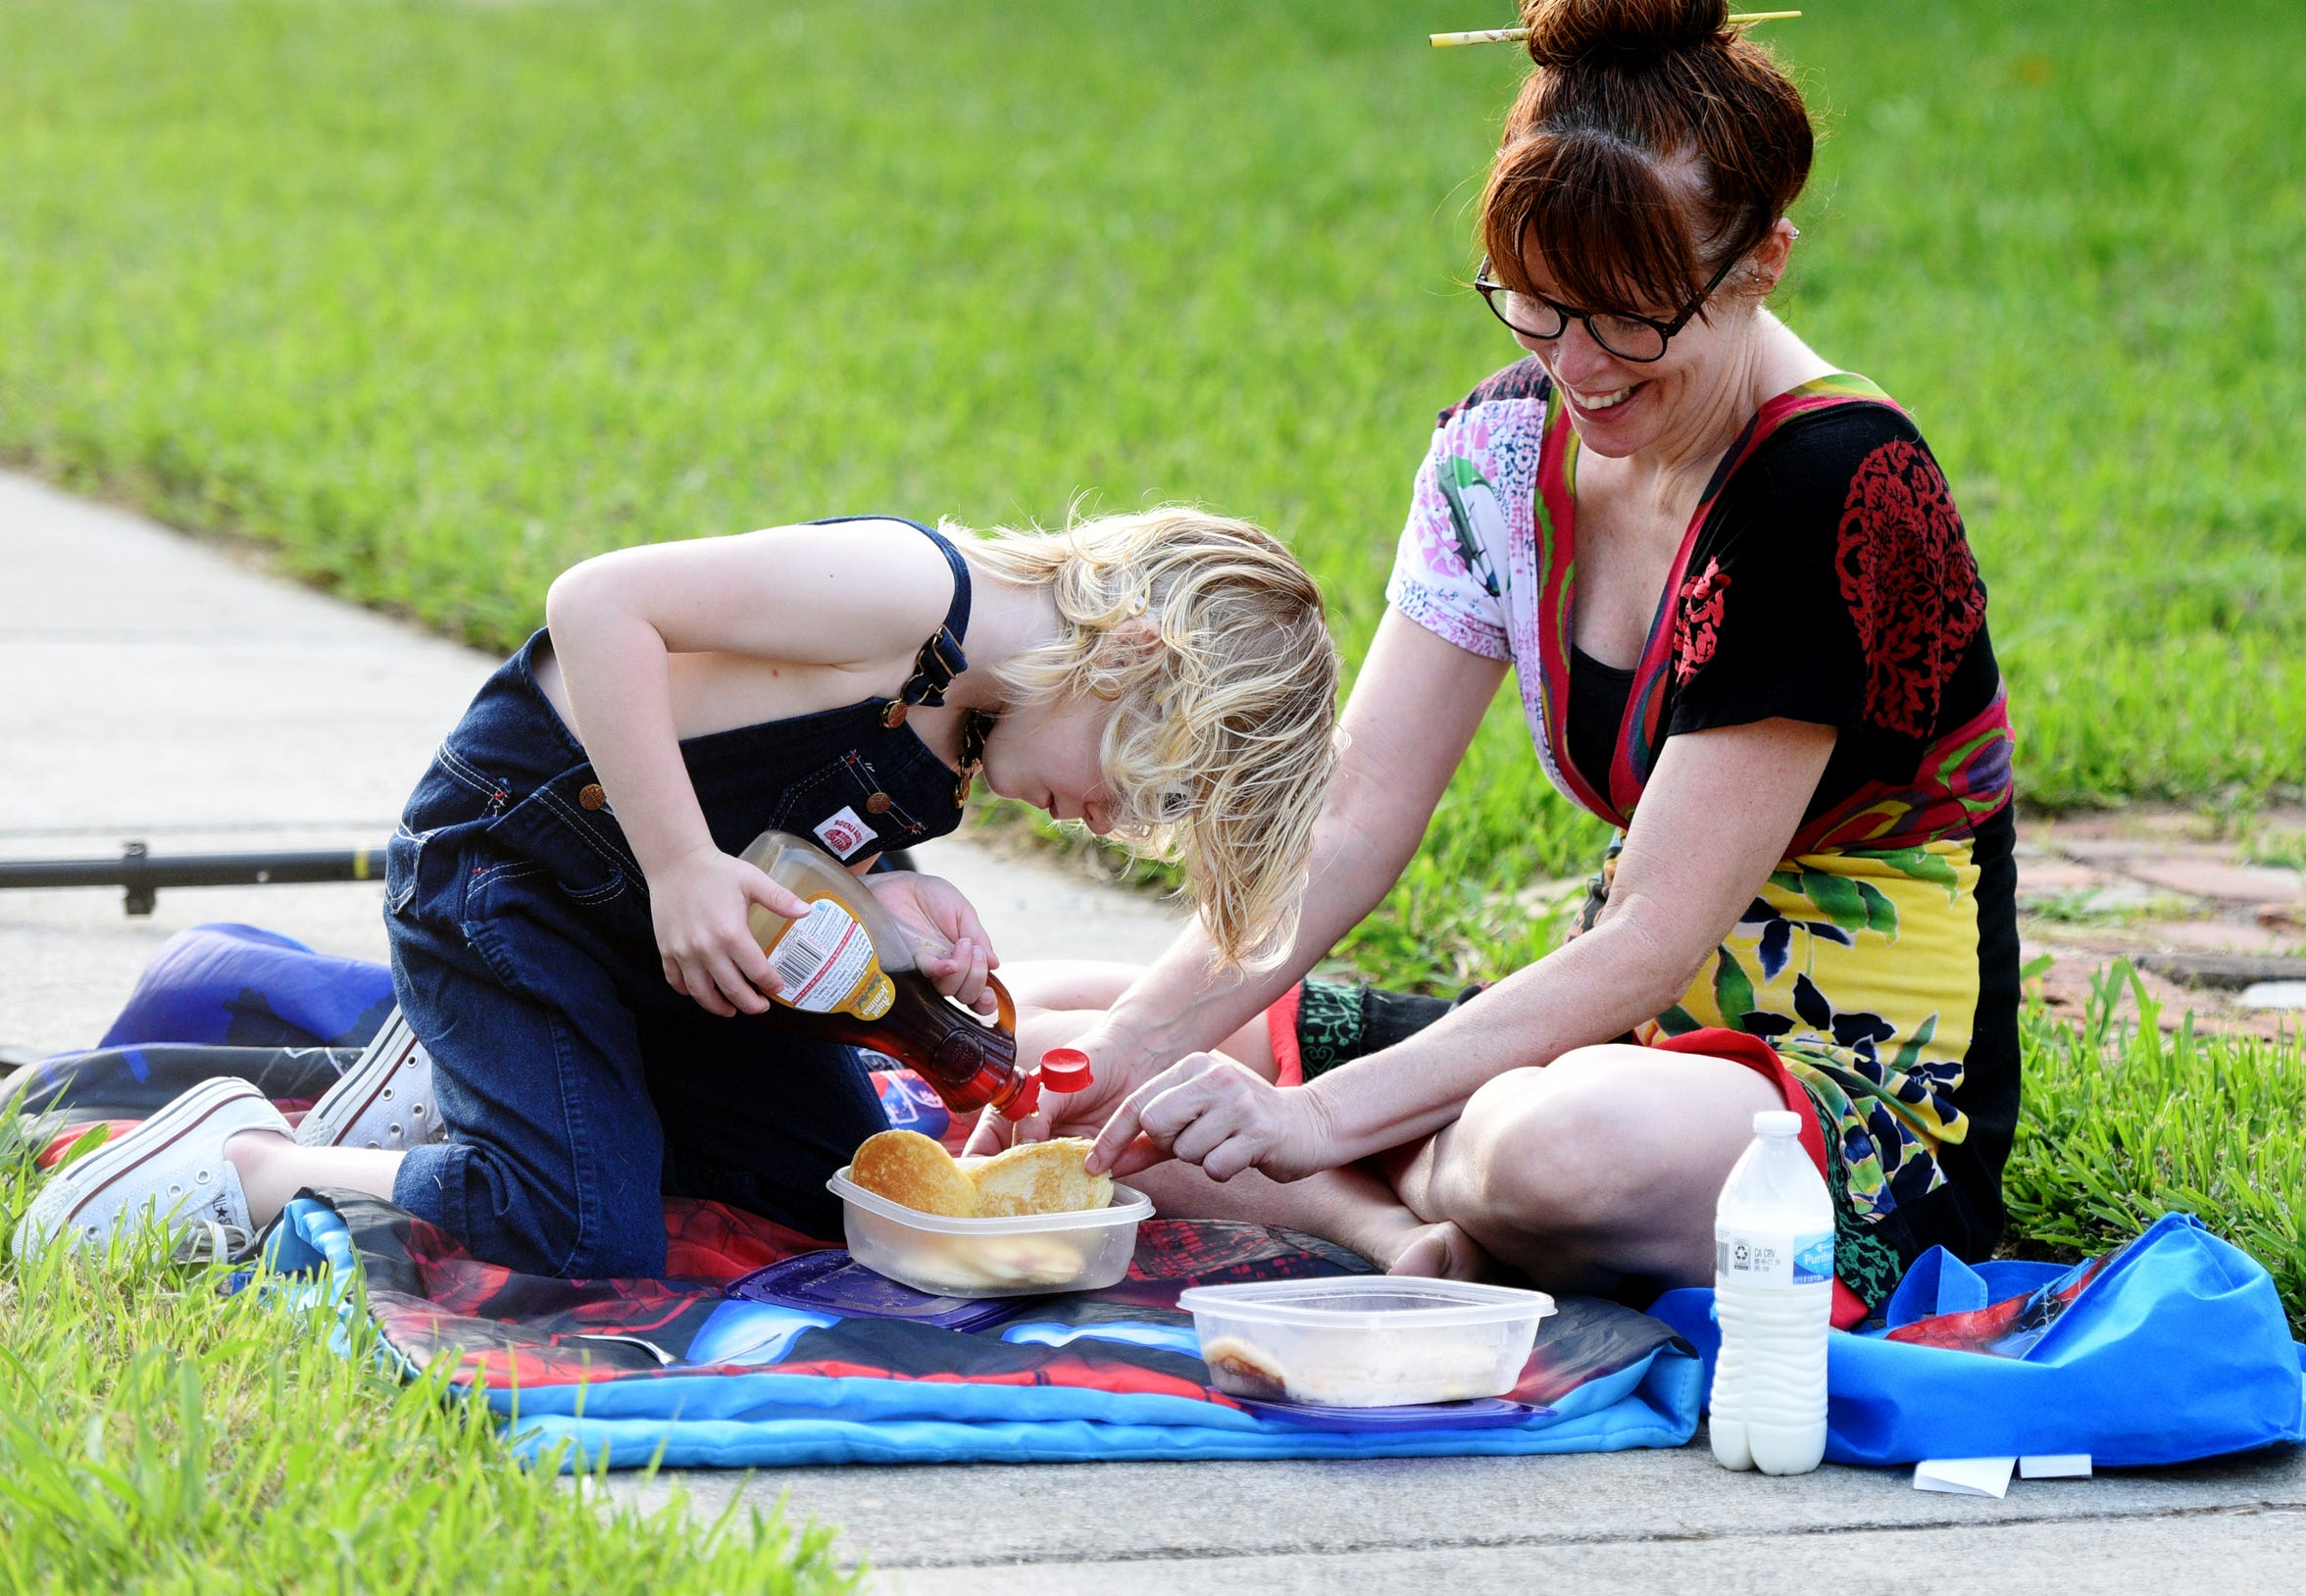 Eli Brasell and her son Motley Brasell picnic on the sidewalk during one of the community dinners on the 700 block of Delaware Street.